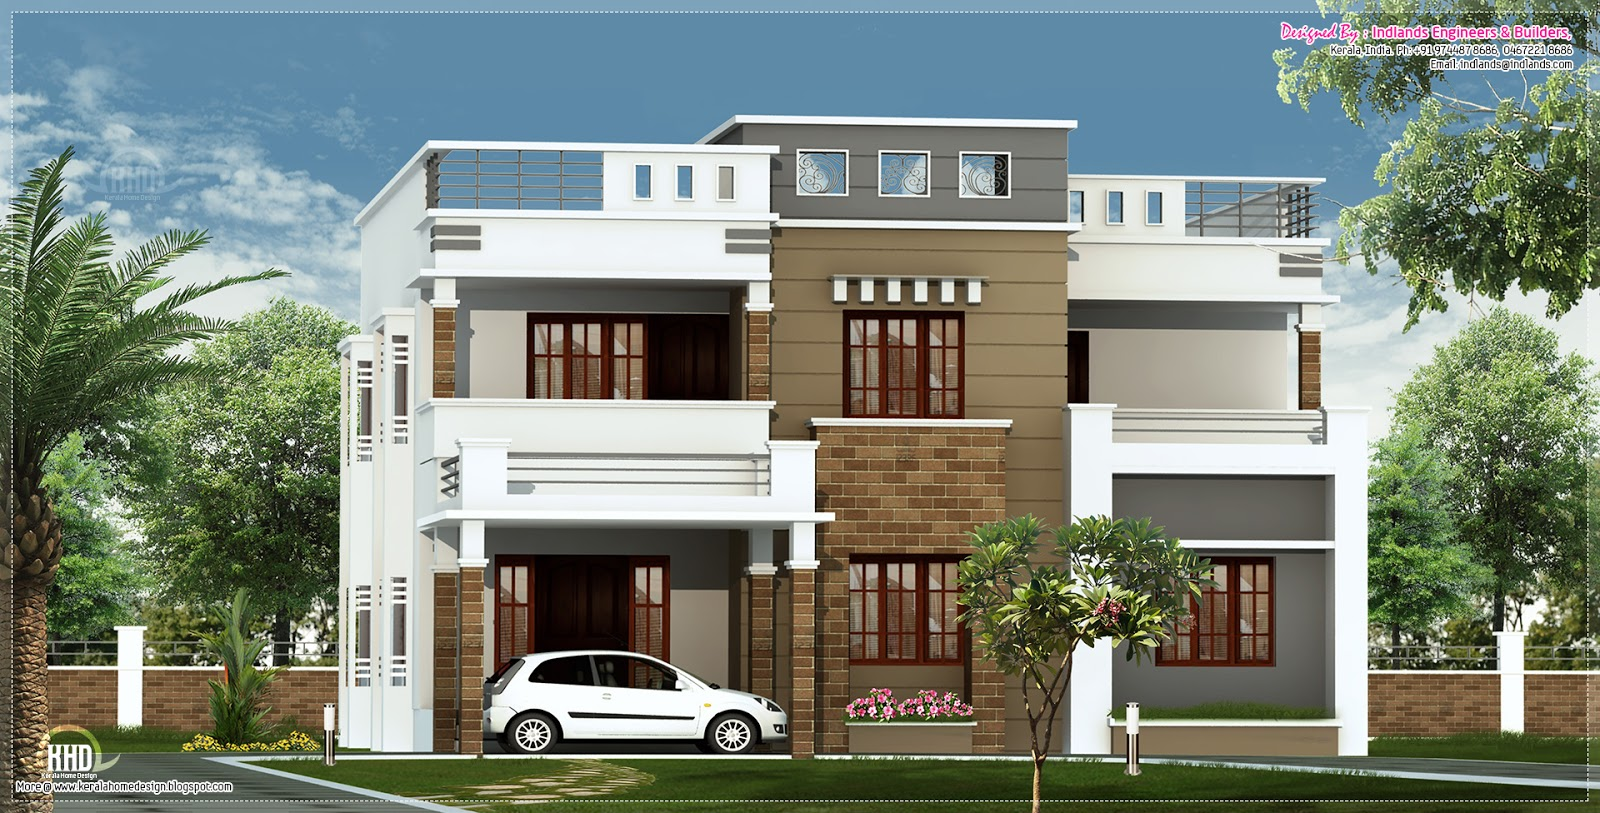 Small house plans flat roof n homes in trend home design Flat house plans